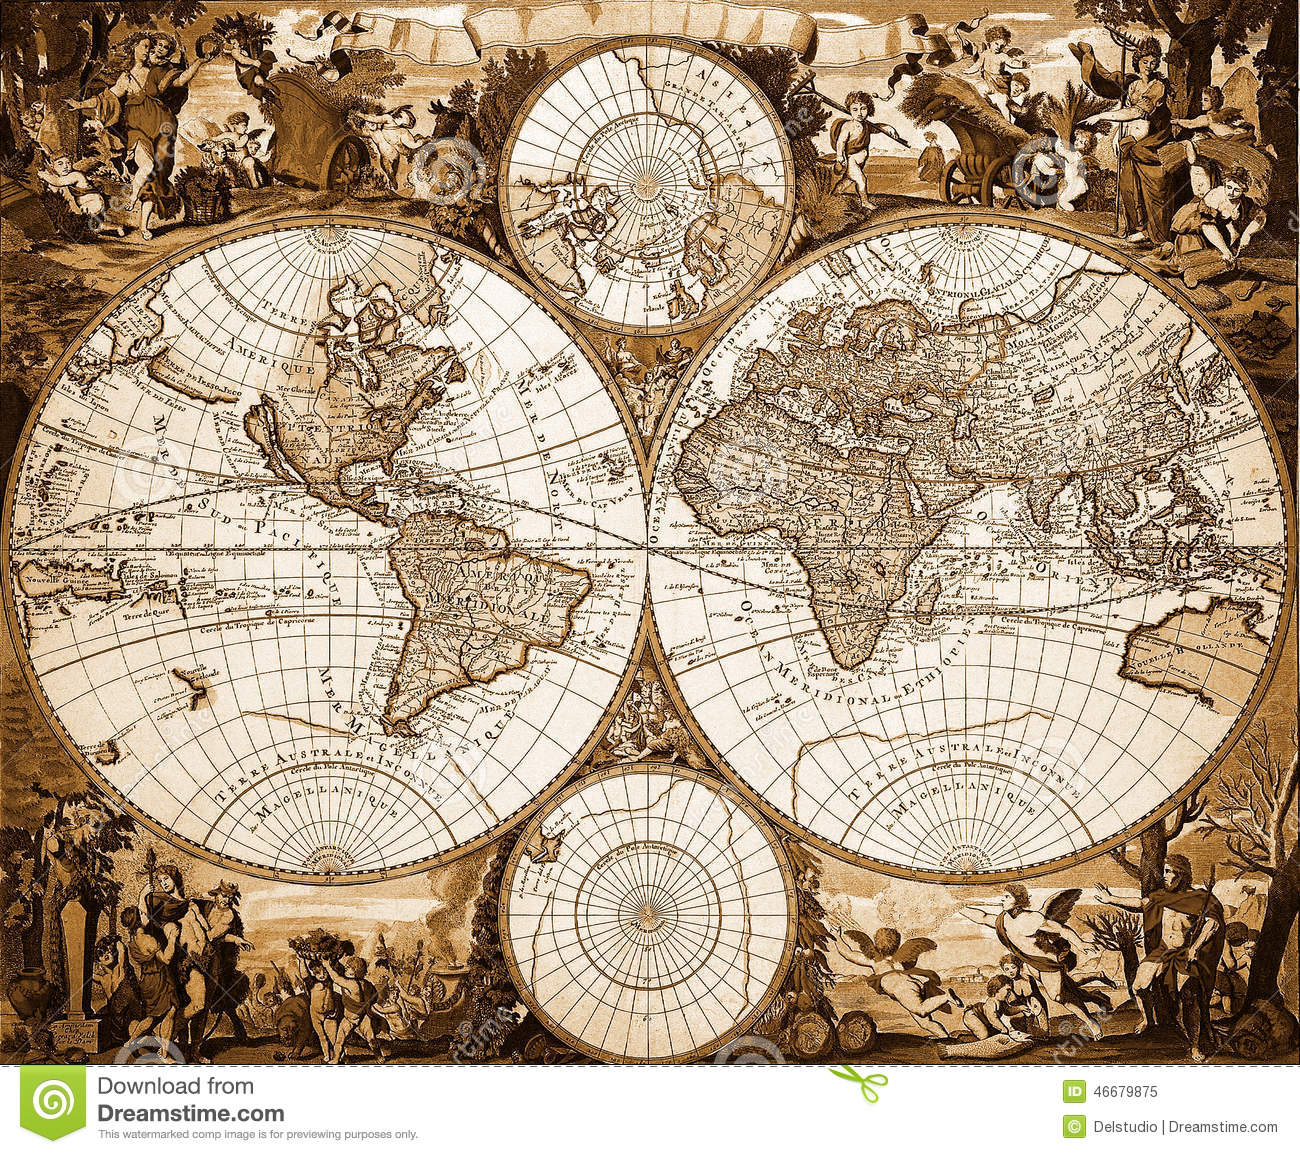 Vintage World Map. Sepia Tones Royalty Free Stock Photo